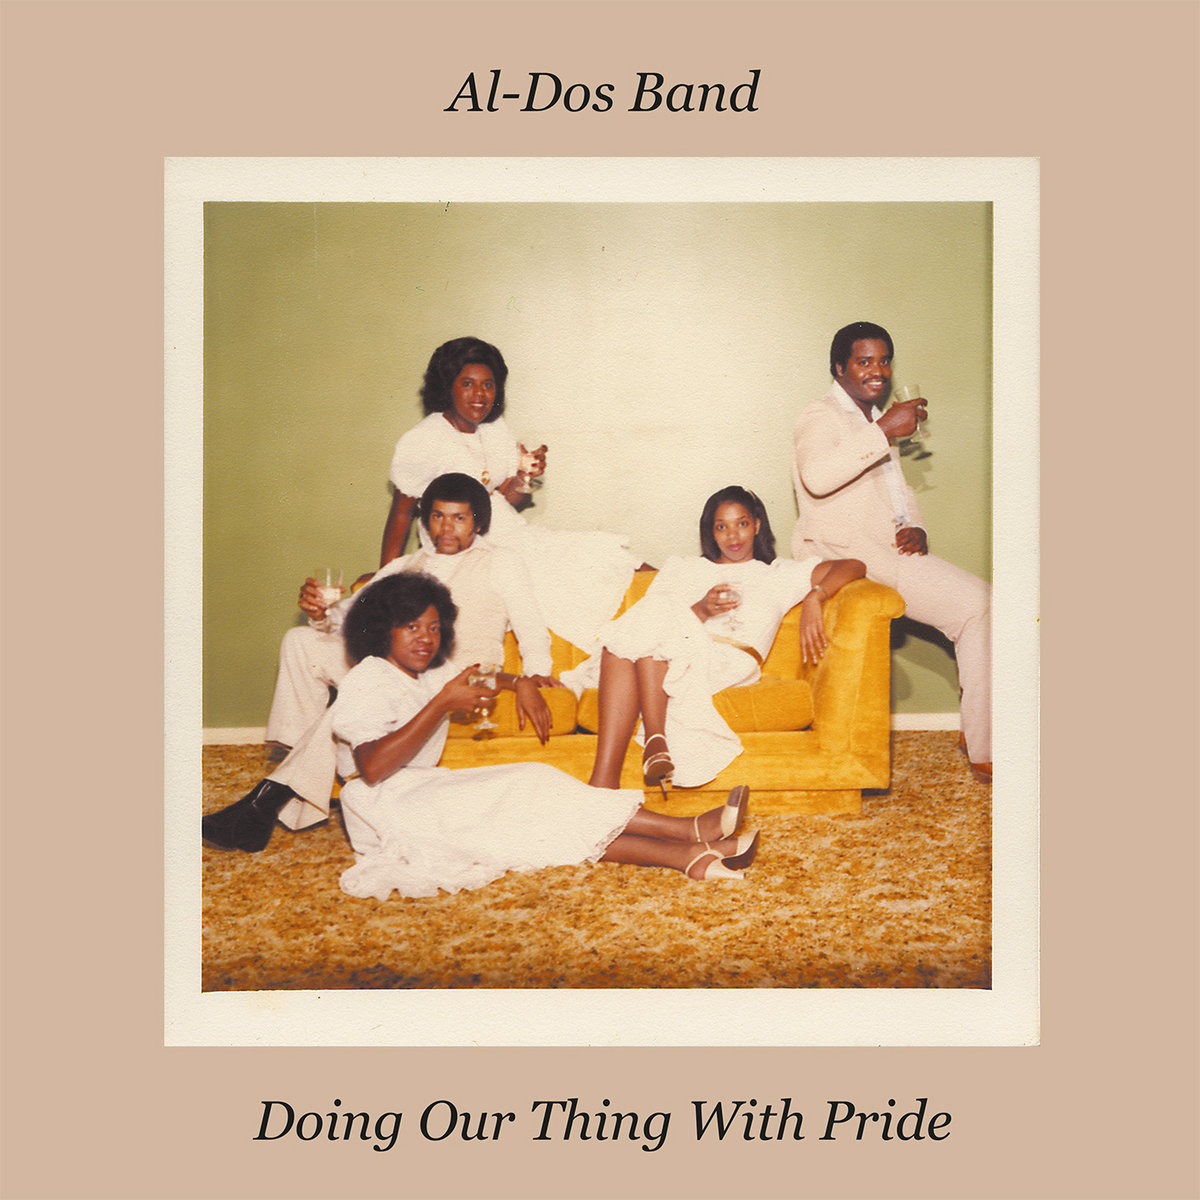 Al-Dos Band : Doing Our Thing With Pride